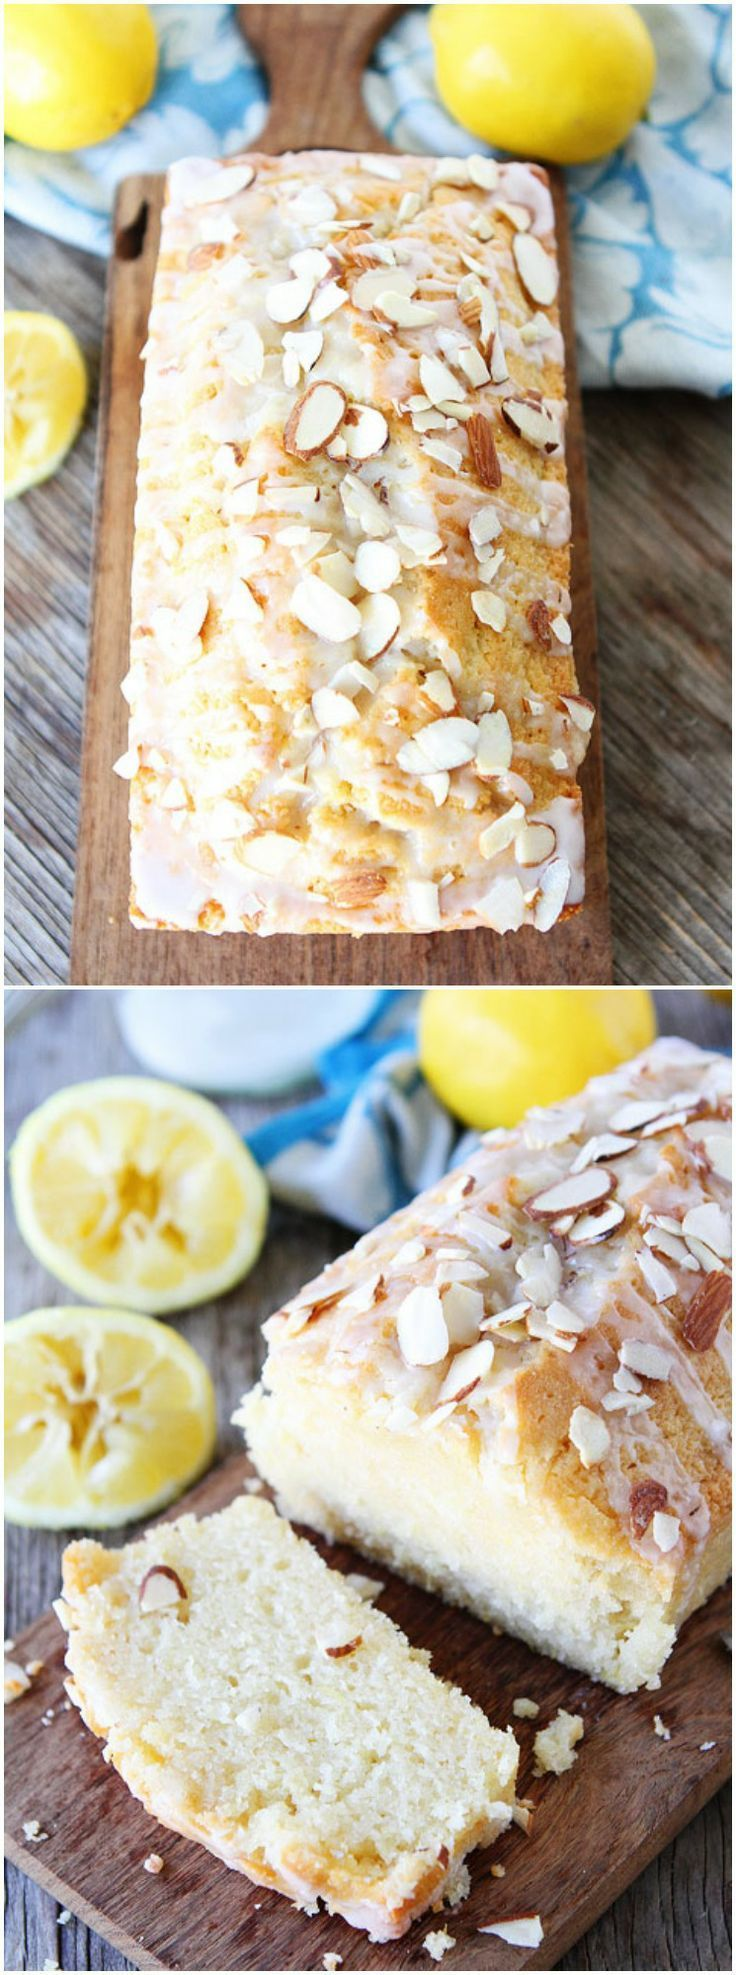 Lemon Almond Bread Recipe on twopeasandtheirpod.com This quick bread is SO good!